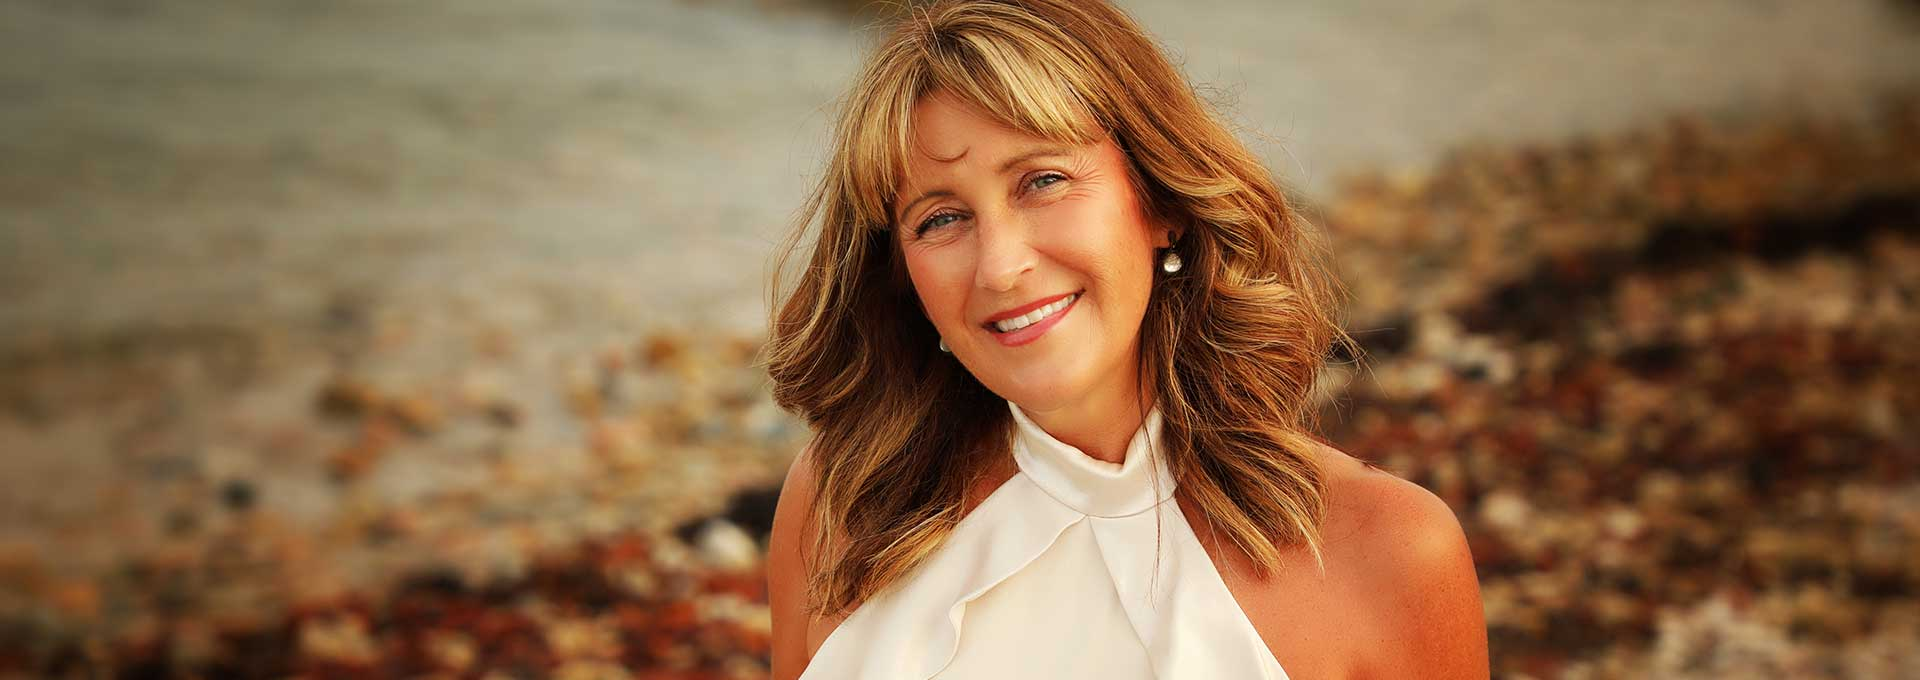 Intimacy and life coaching packages with Ally Jewel